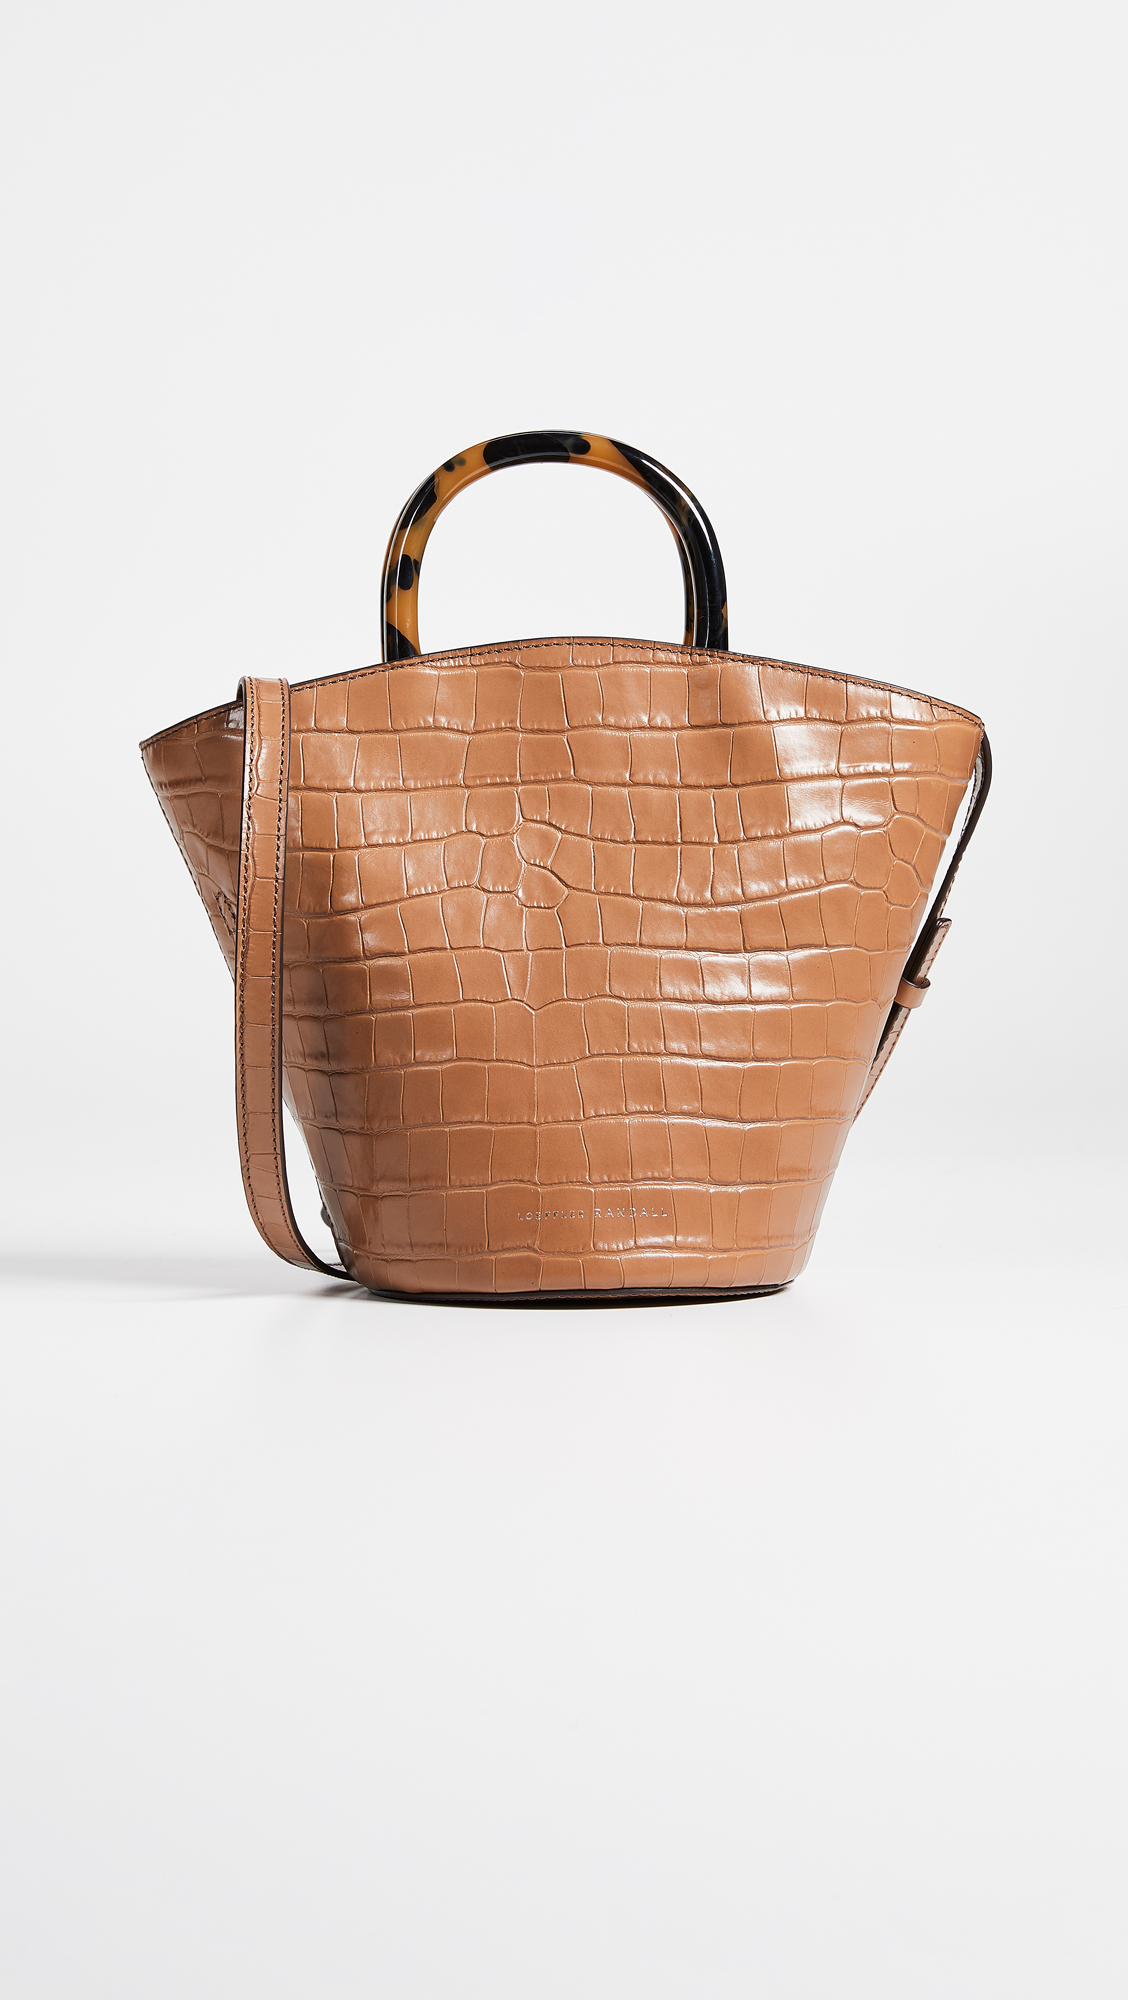 Tortoise Handle Loeffler Randall Camel Leather Bag